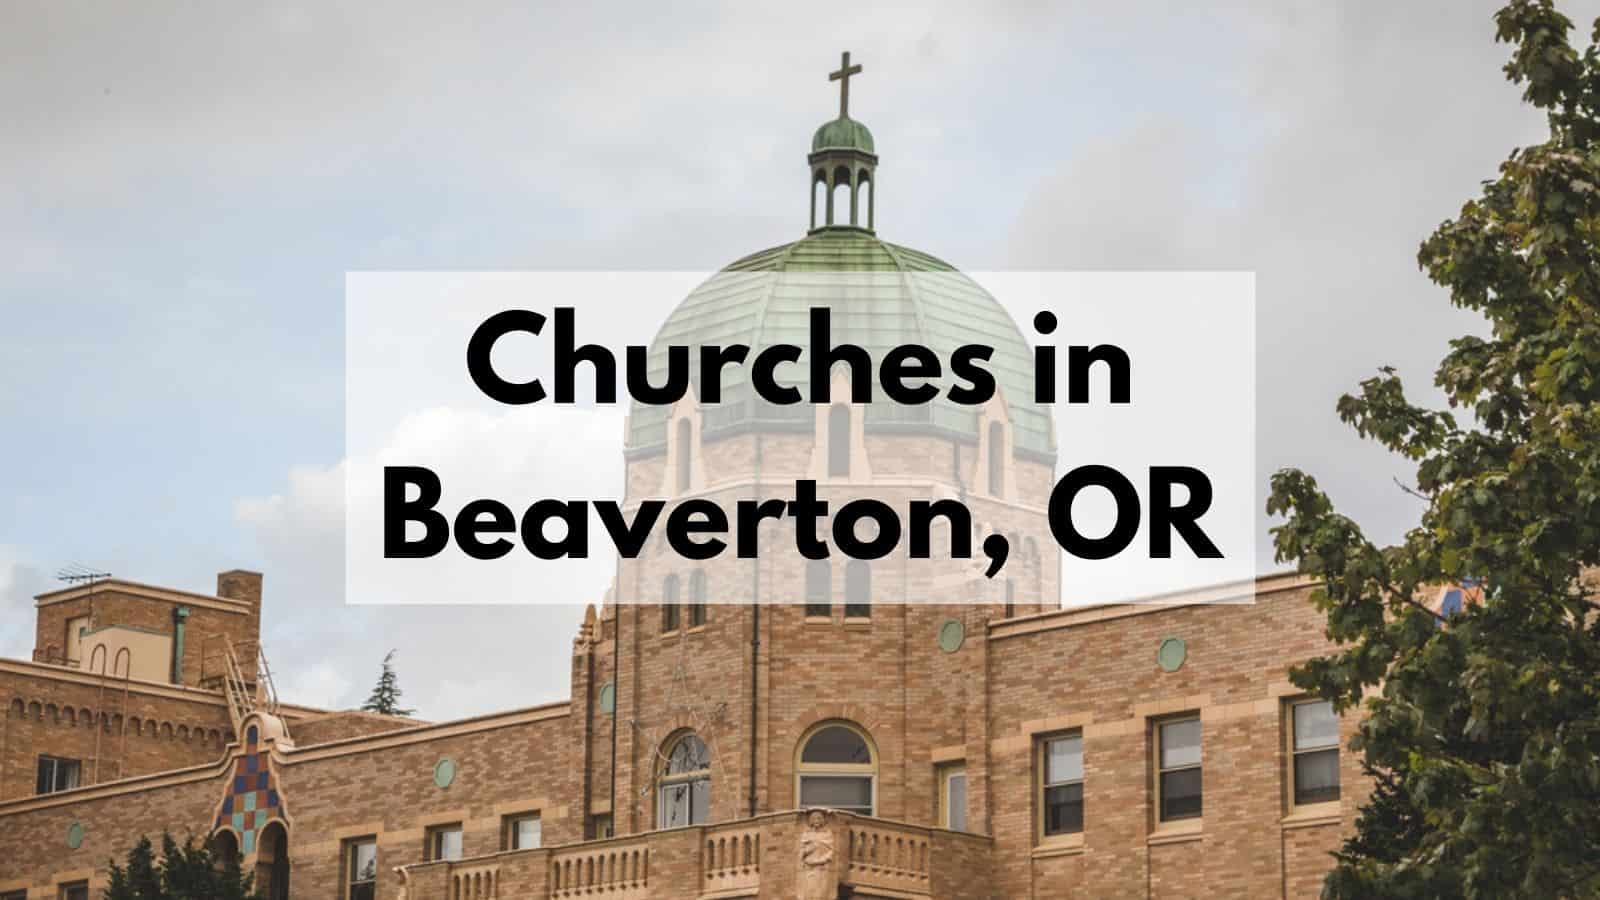 Churches in Beaverton, OR